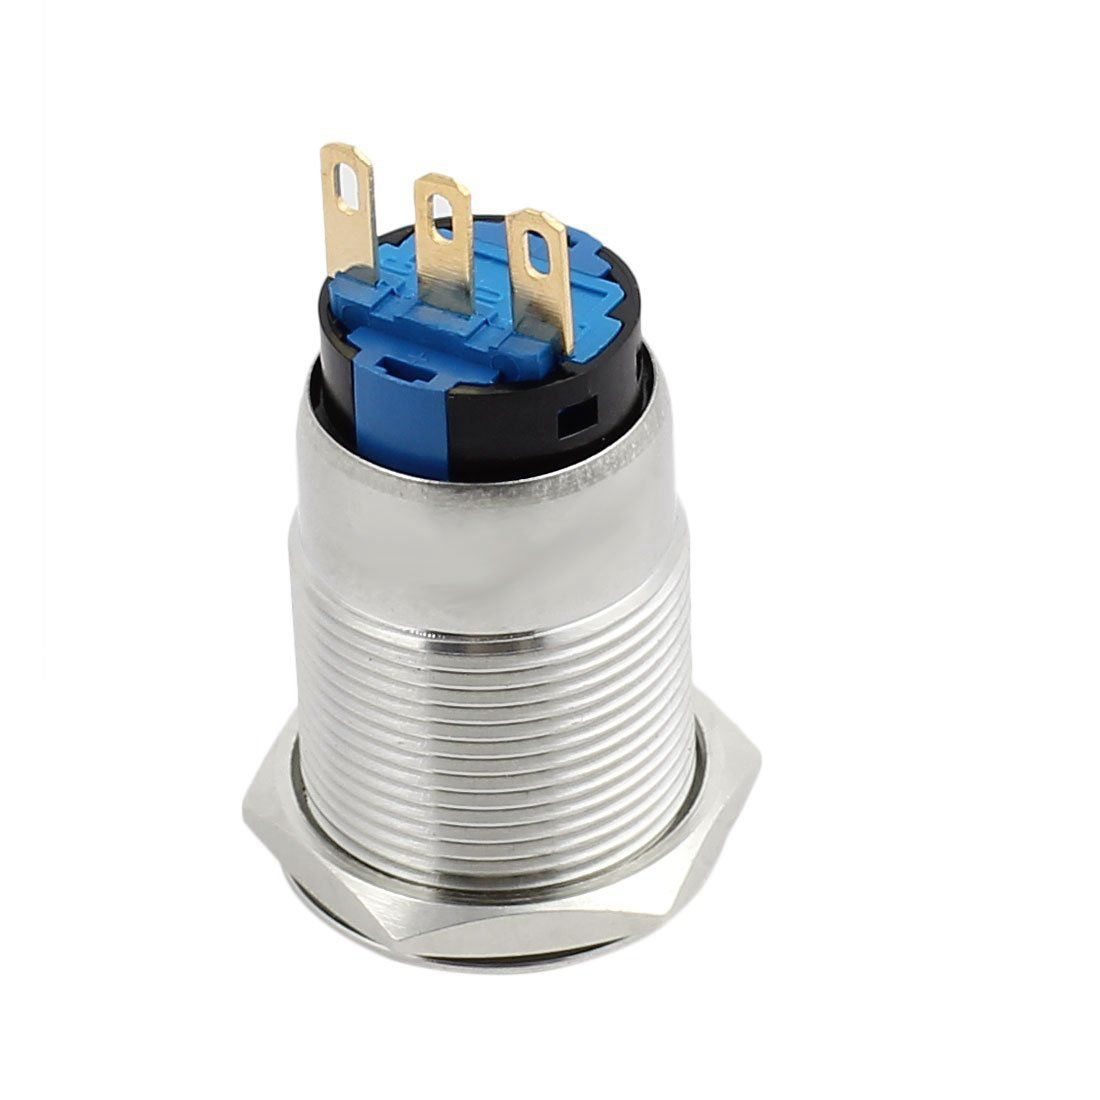 Silver Tone waterproof Flat Round Latching Stainless Steel Push Button Switch with Light CE Recognized